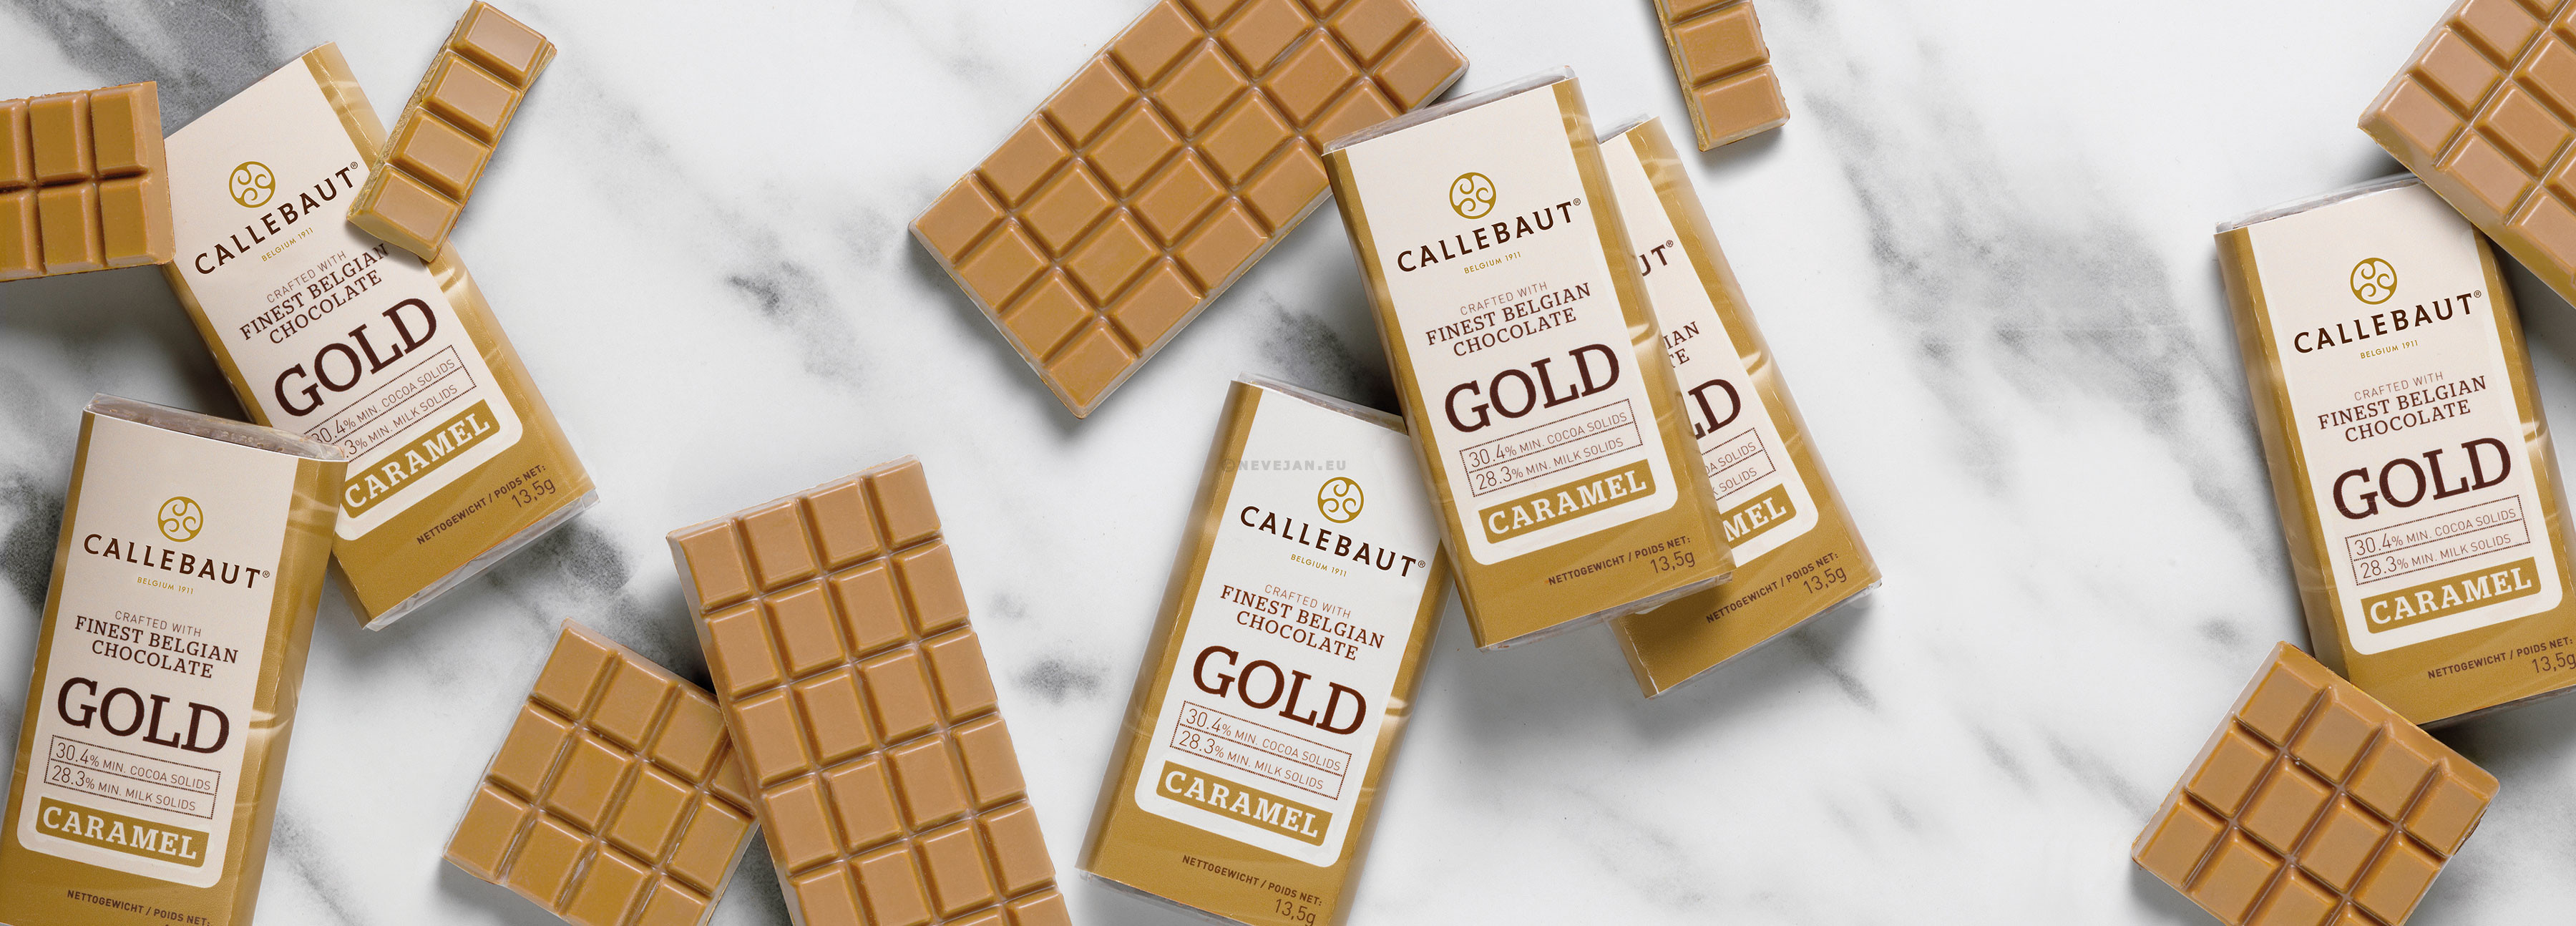 Callebaut Napolitains Chocolate Gold 75pcs Wrapped Individually